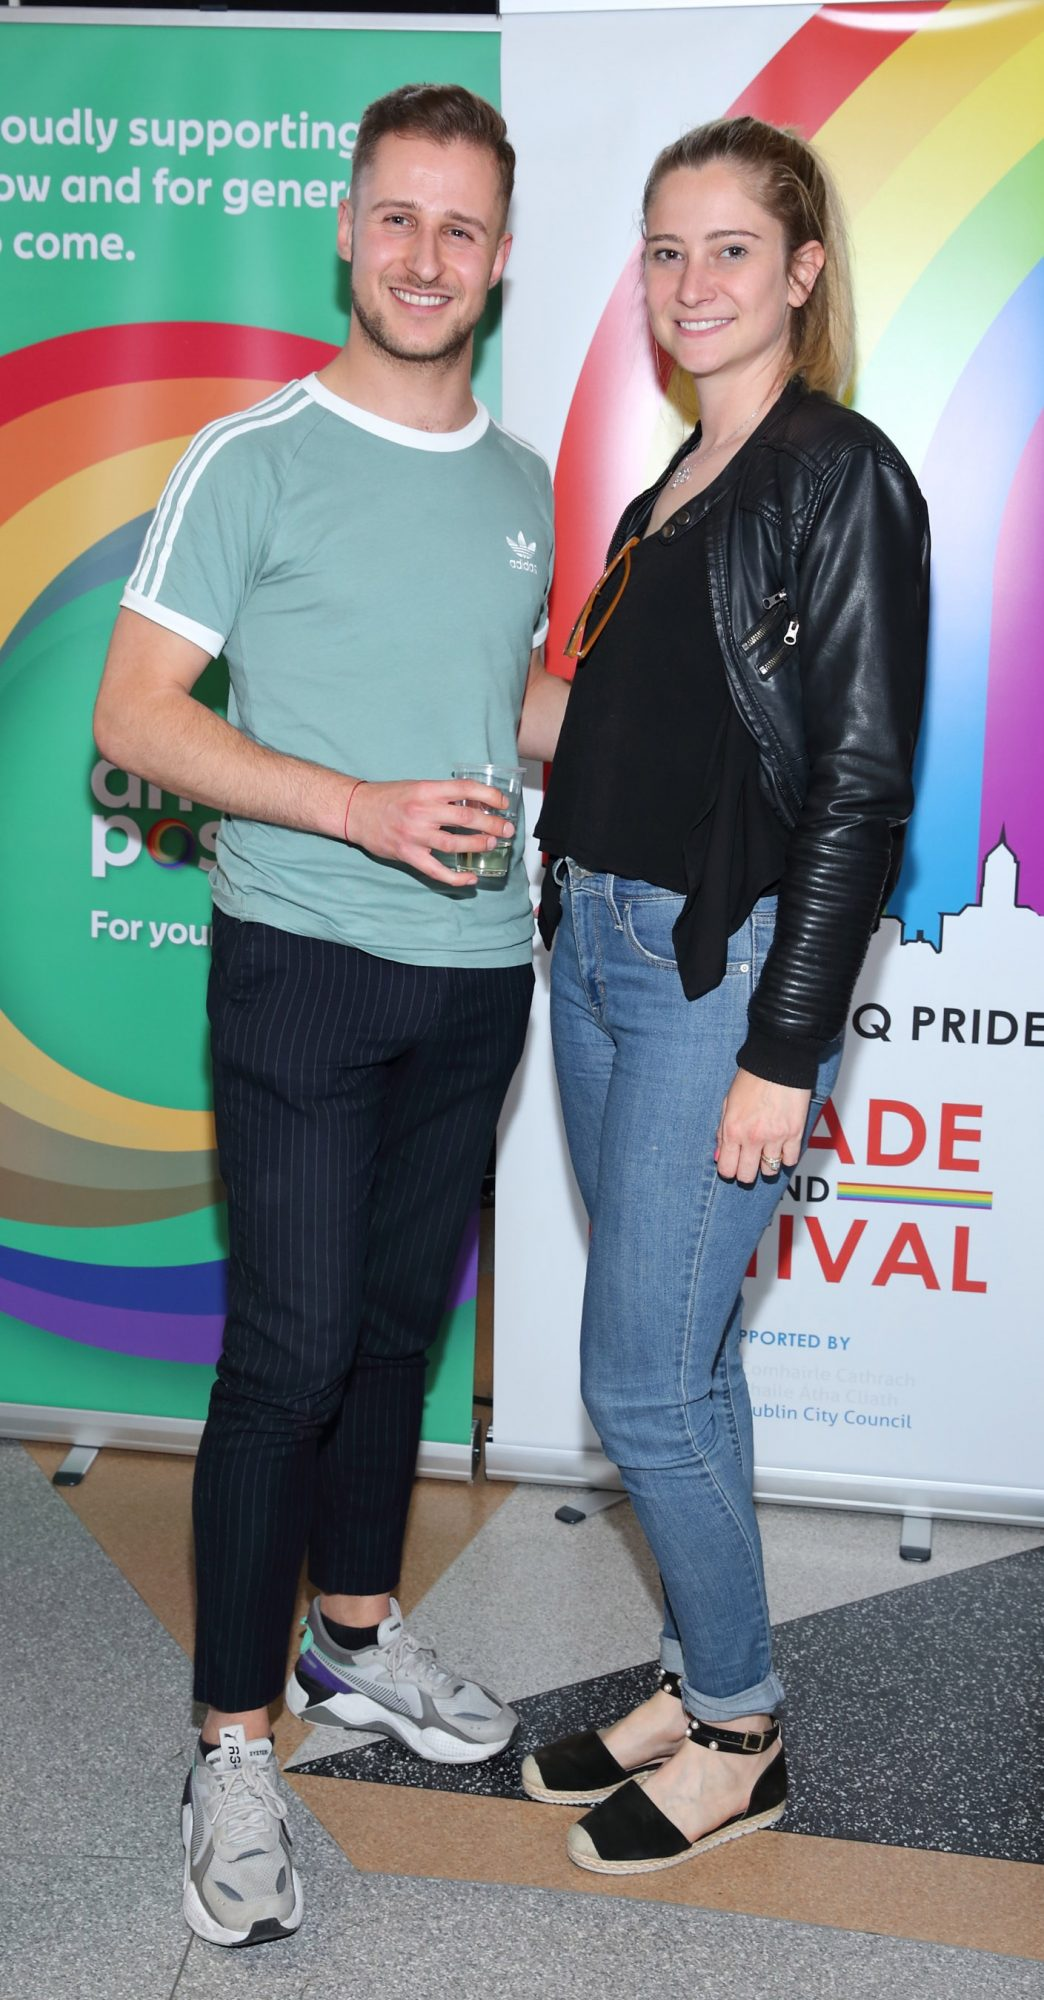 Alex Geisser and Lili Finn pictured at the launch of the Dublin LGBTQ+ Pride Festival 2019 in partnership with platinum sponsor Tesco at the GPO, Dublin. Picture: Brian McEvoy Photography